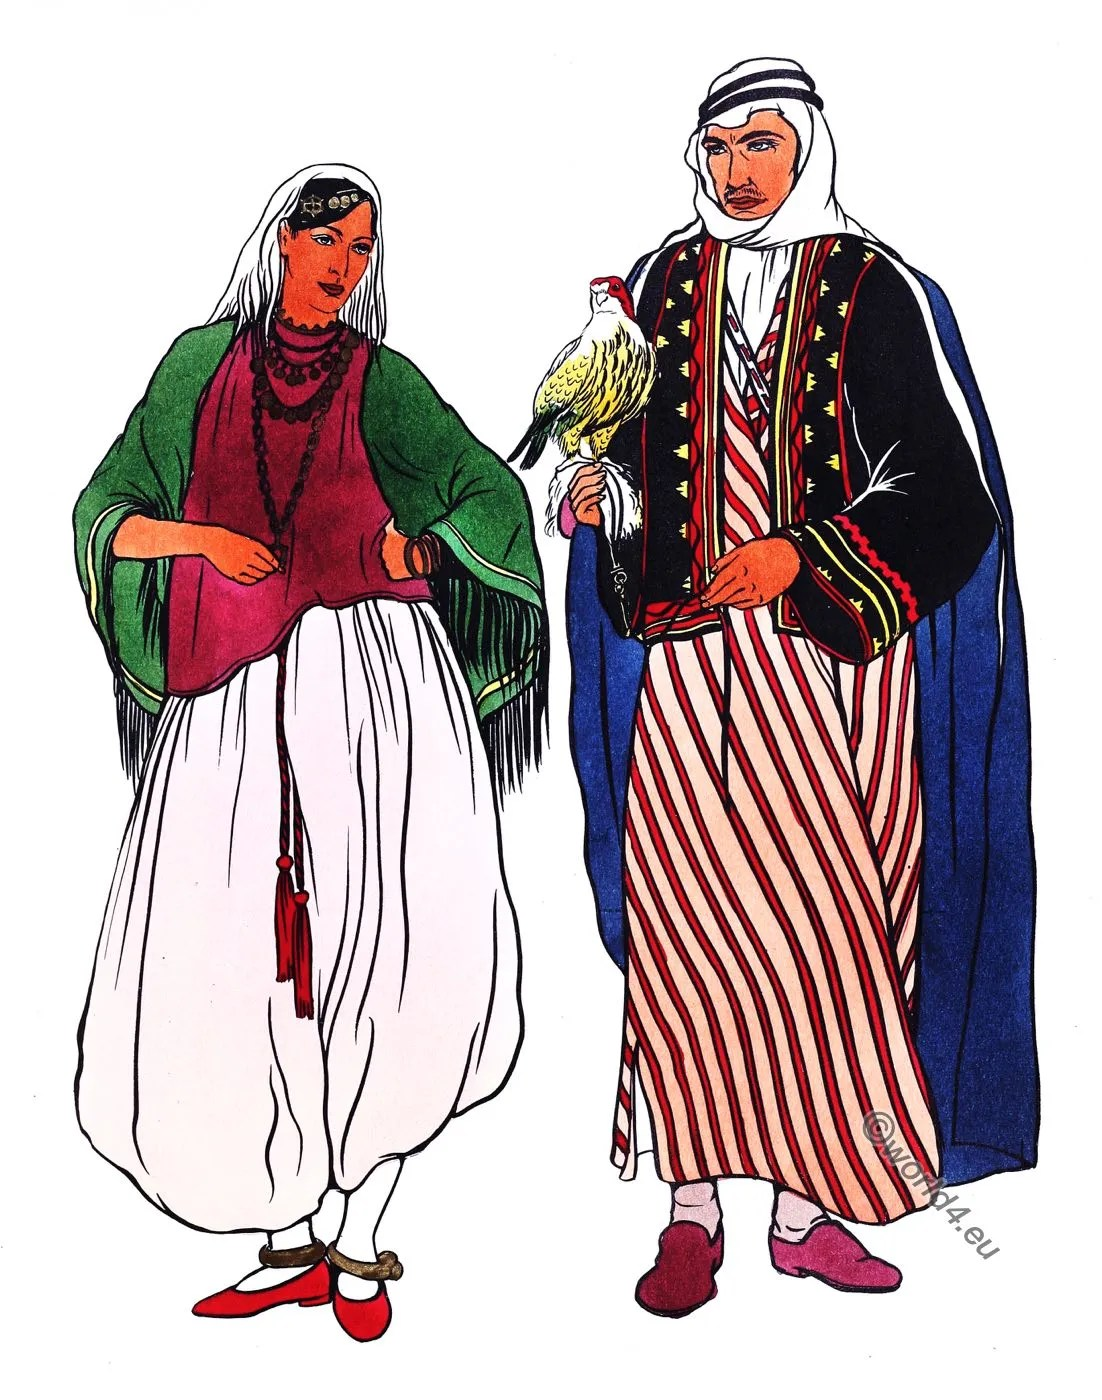 Arabian, costumes, dress, aba, kubiyah, sakal